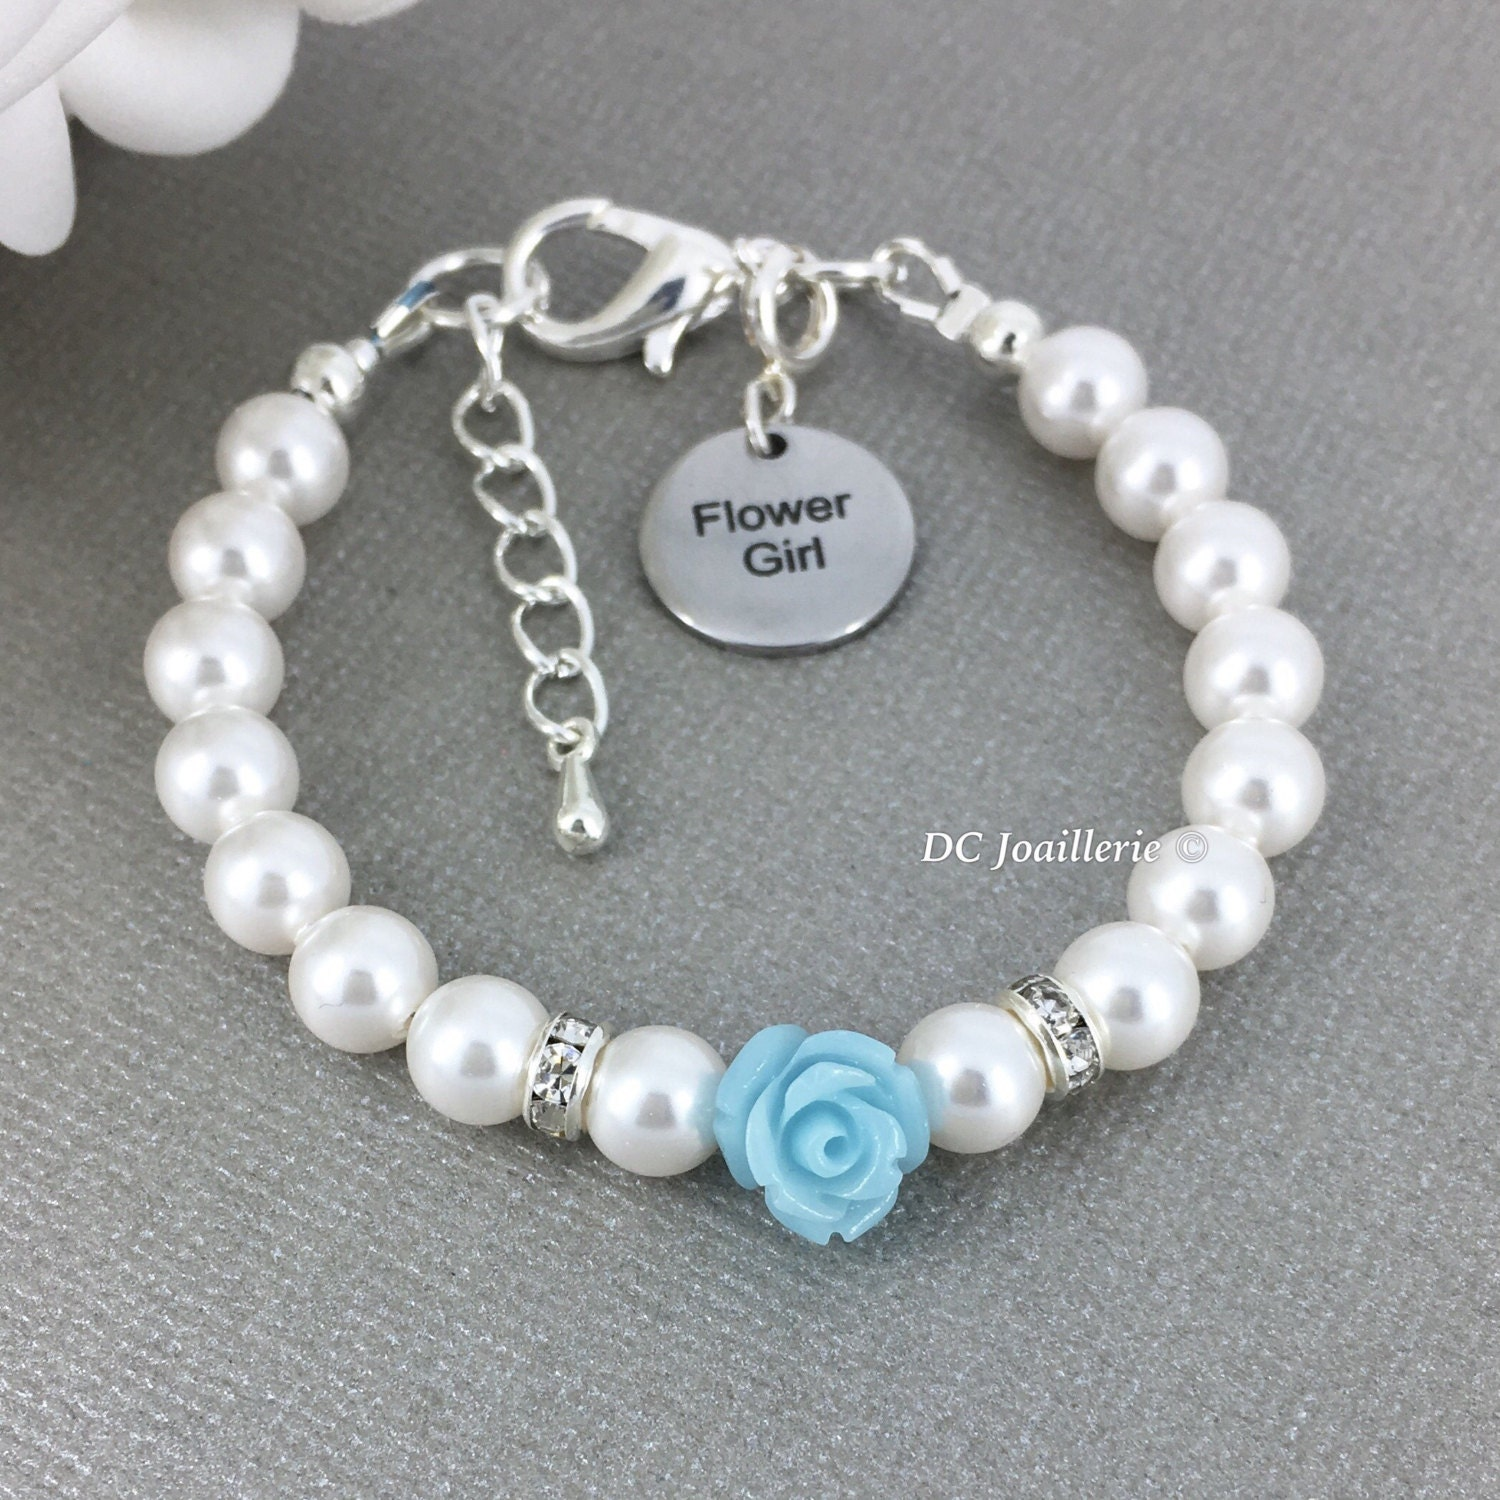 name it pearl jewelry personalize wedding girls pearls your on this girl flowergirl stretch bracelet pin flower with